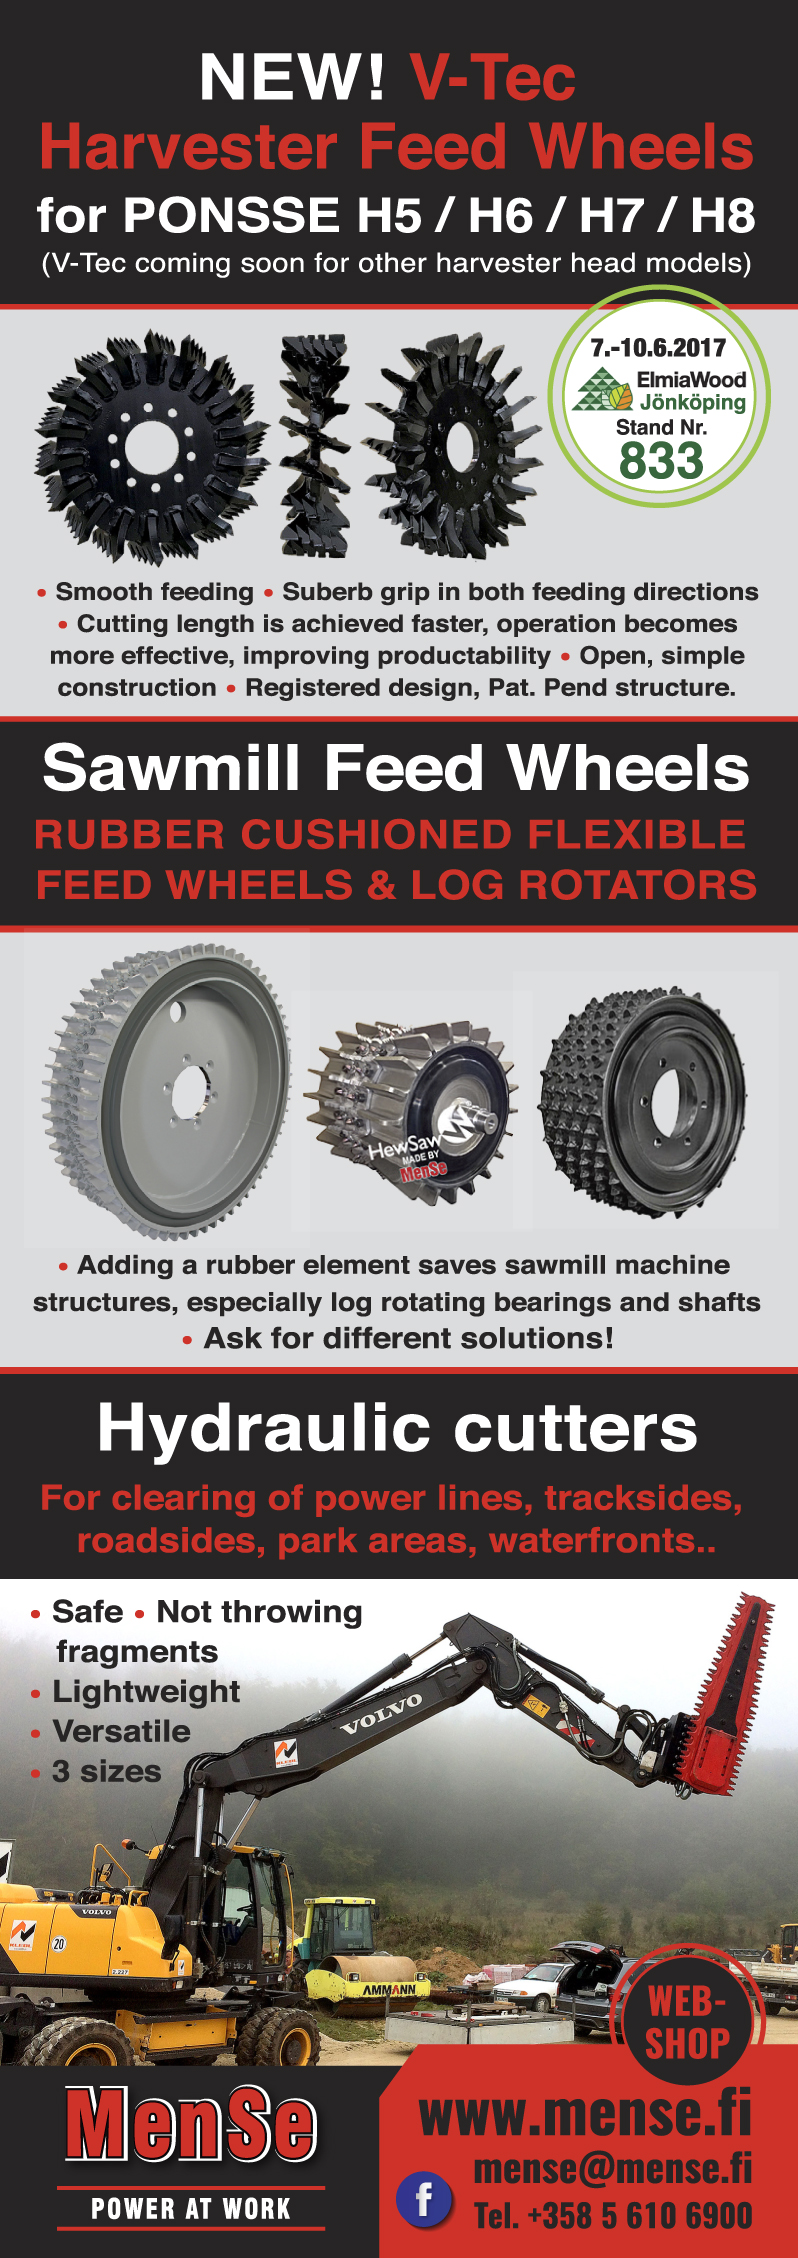 New V-Tec Harvester Feed Wheels